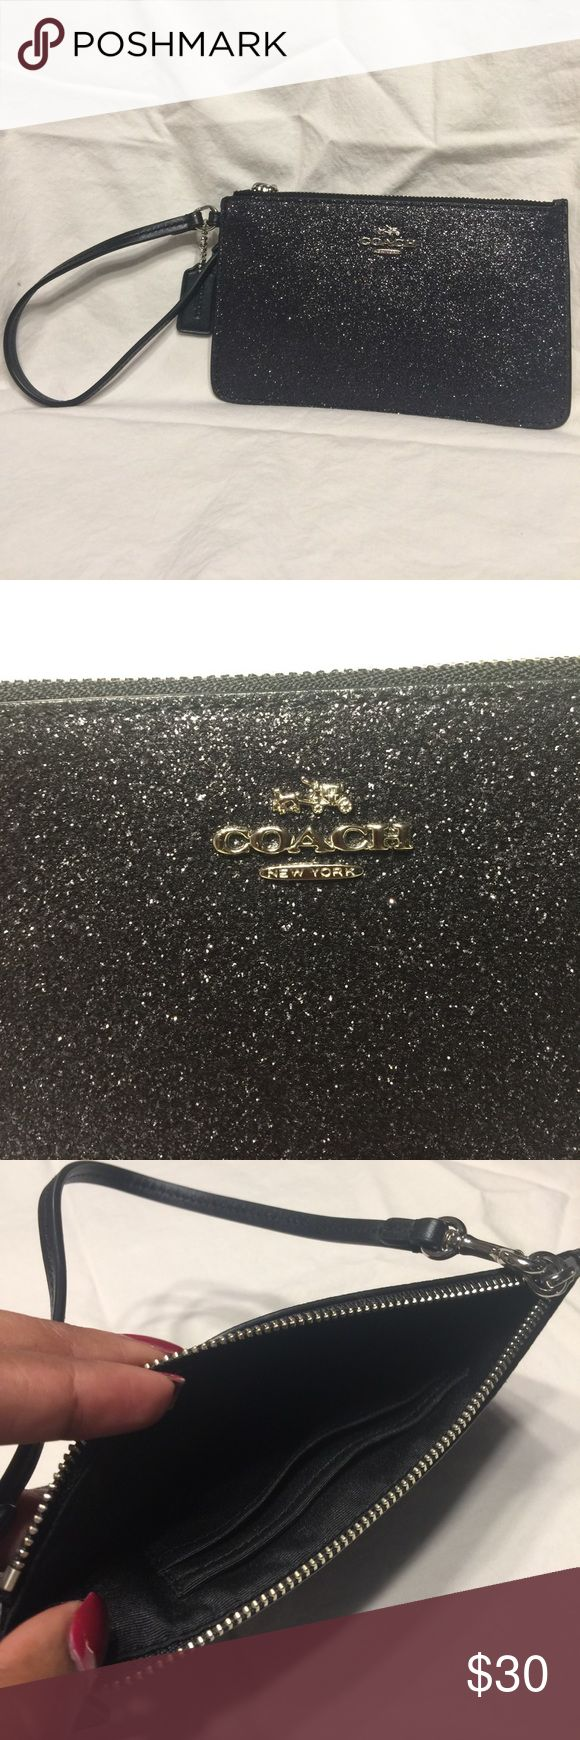 Black glitter Coach wristlet New, only used once, black glitter coach wristlet. Bought it at the Coach store in New Orleans to take into a NFL game because my cross-body was too big. Great condition, just don't have a use for it. Coach Bags Clutches & Wristlets